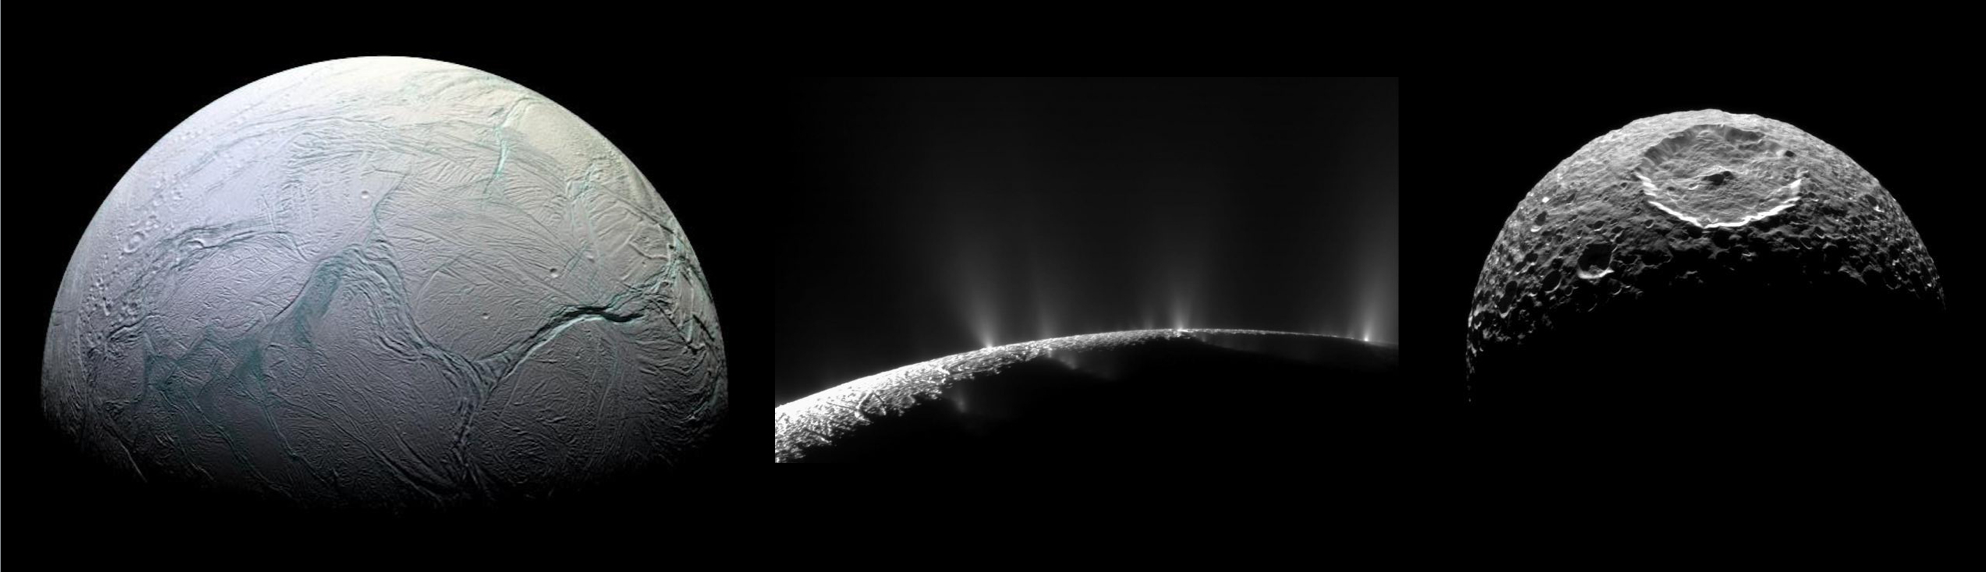 Deciphering the history of Enceladus and its sibling moons of Saturn